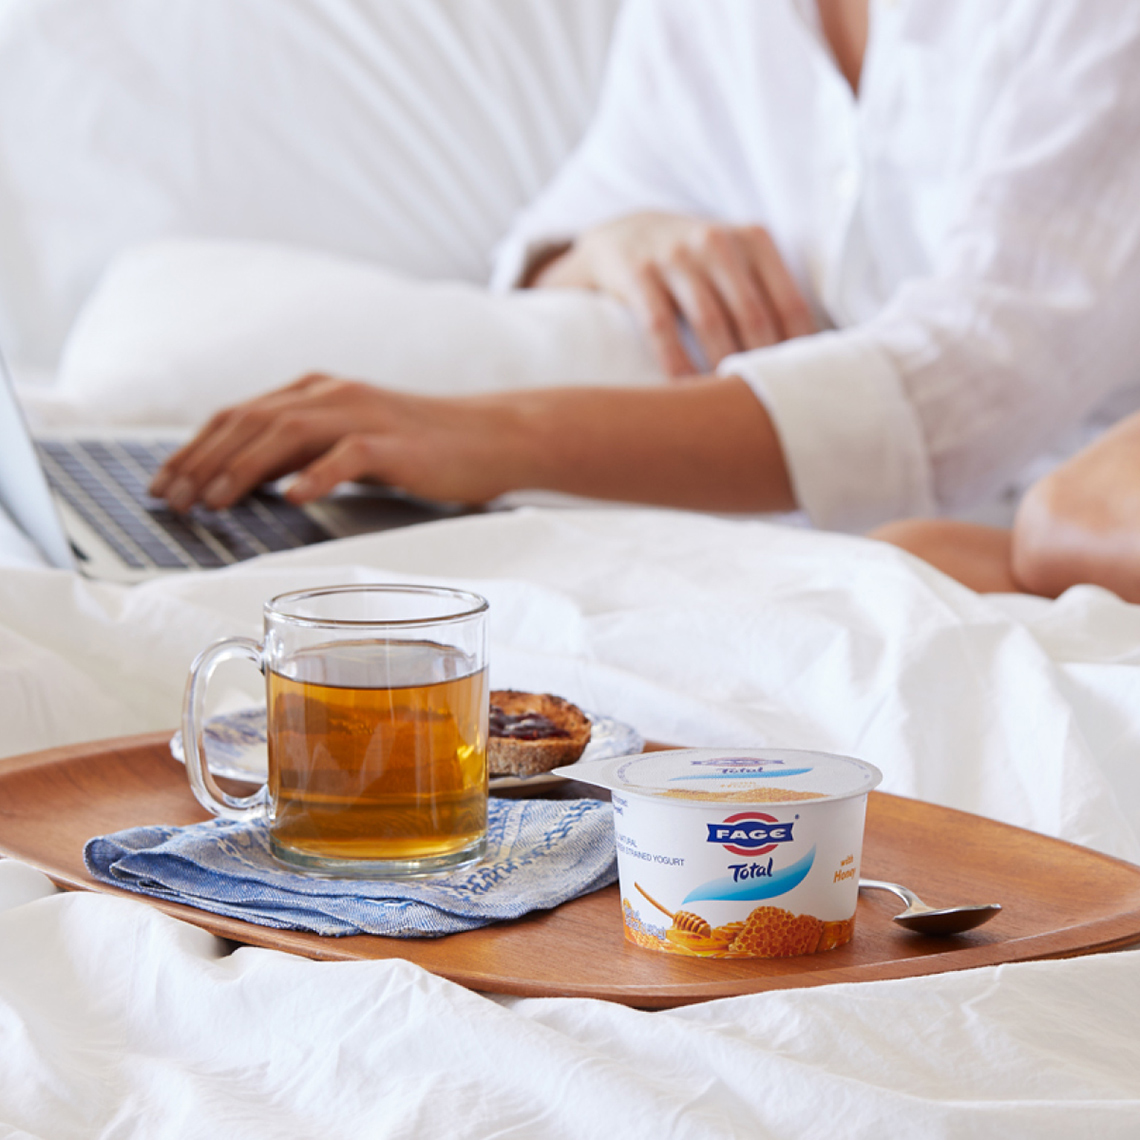 Fage Yogurt Bed Teapot Surfing